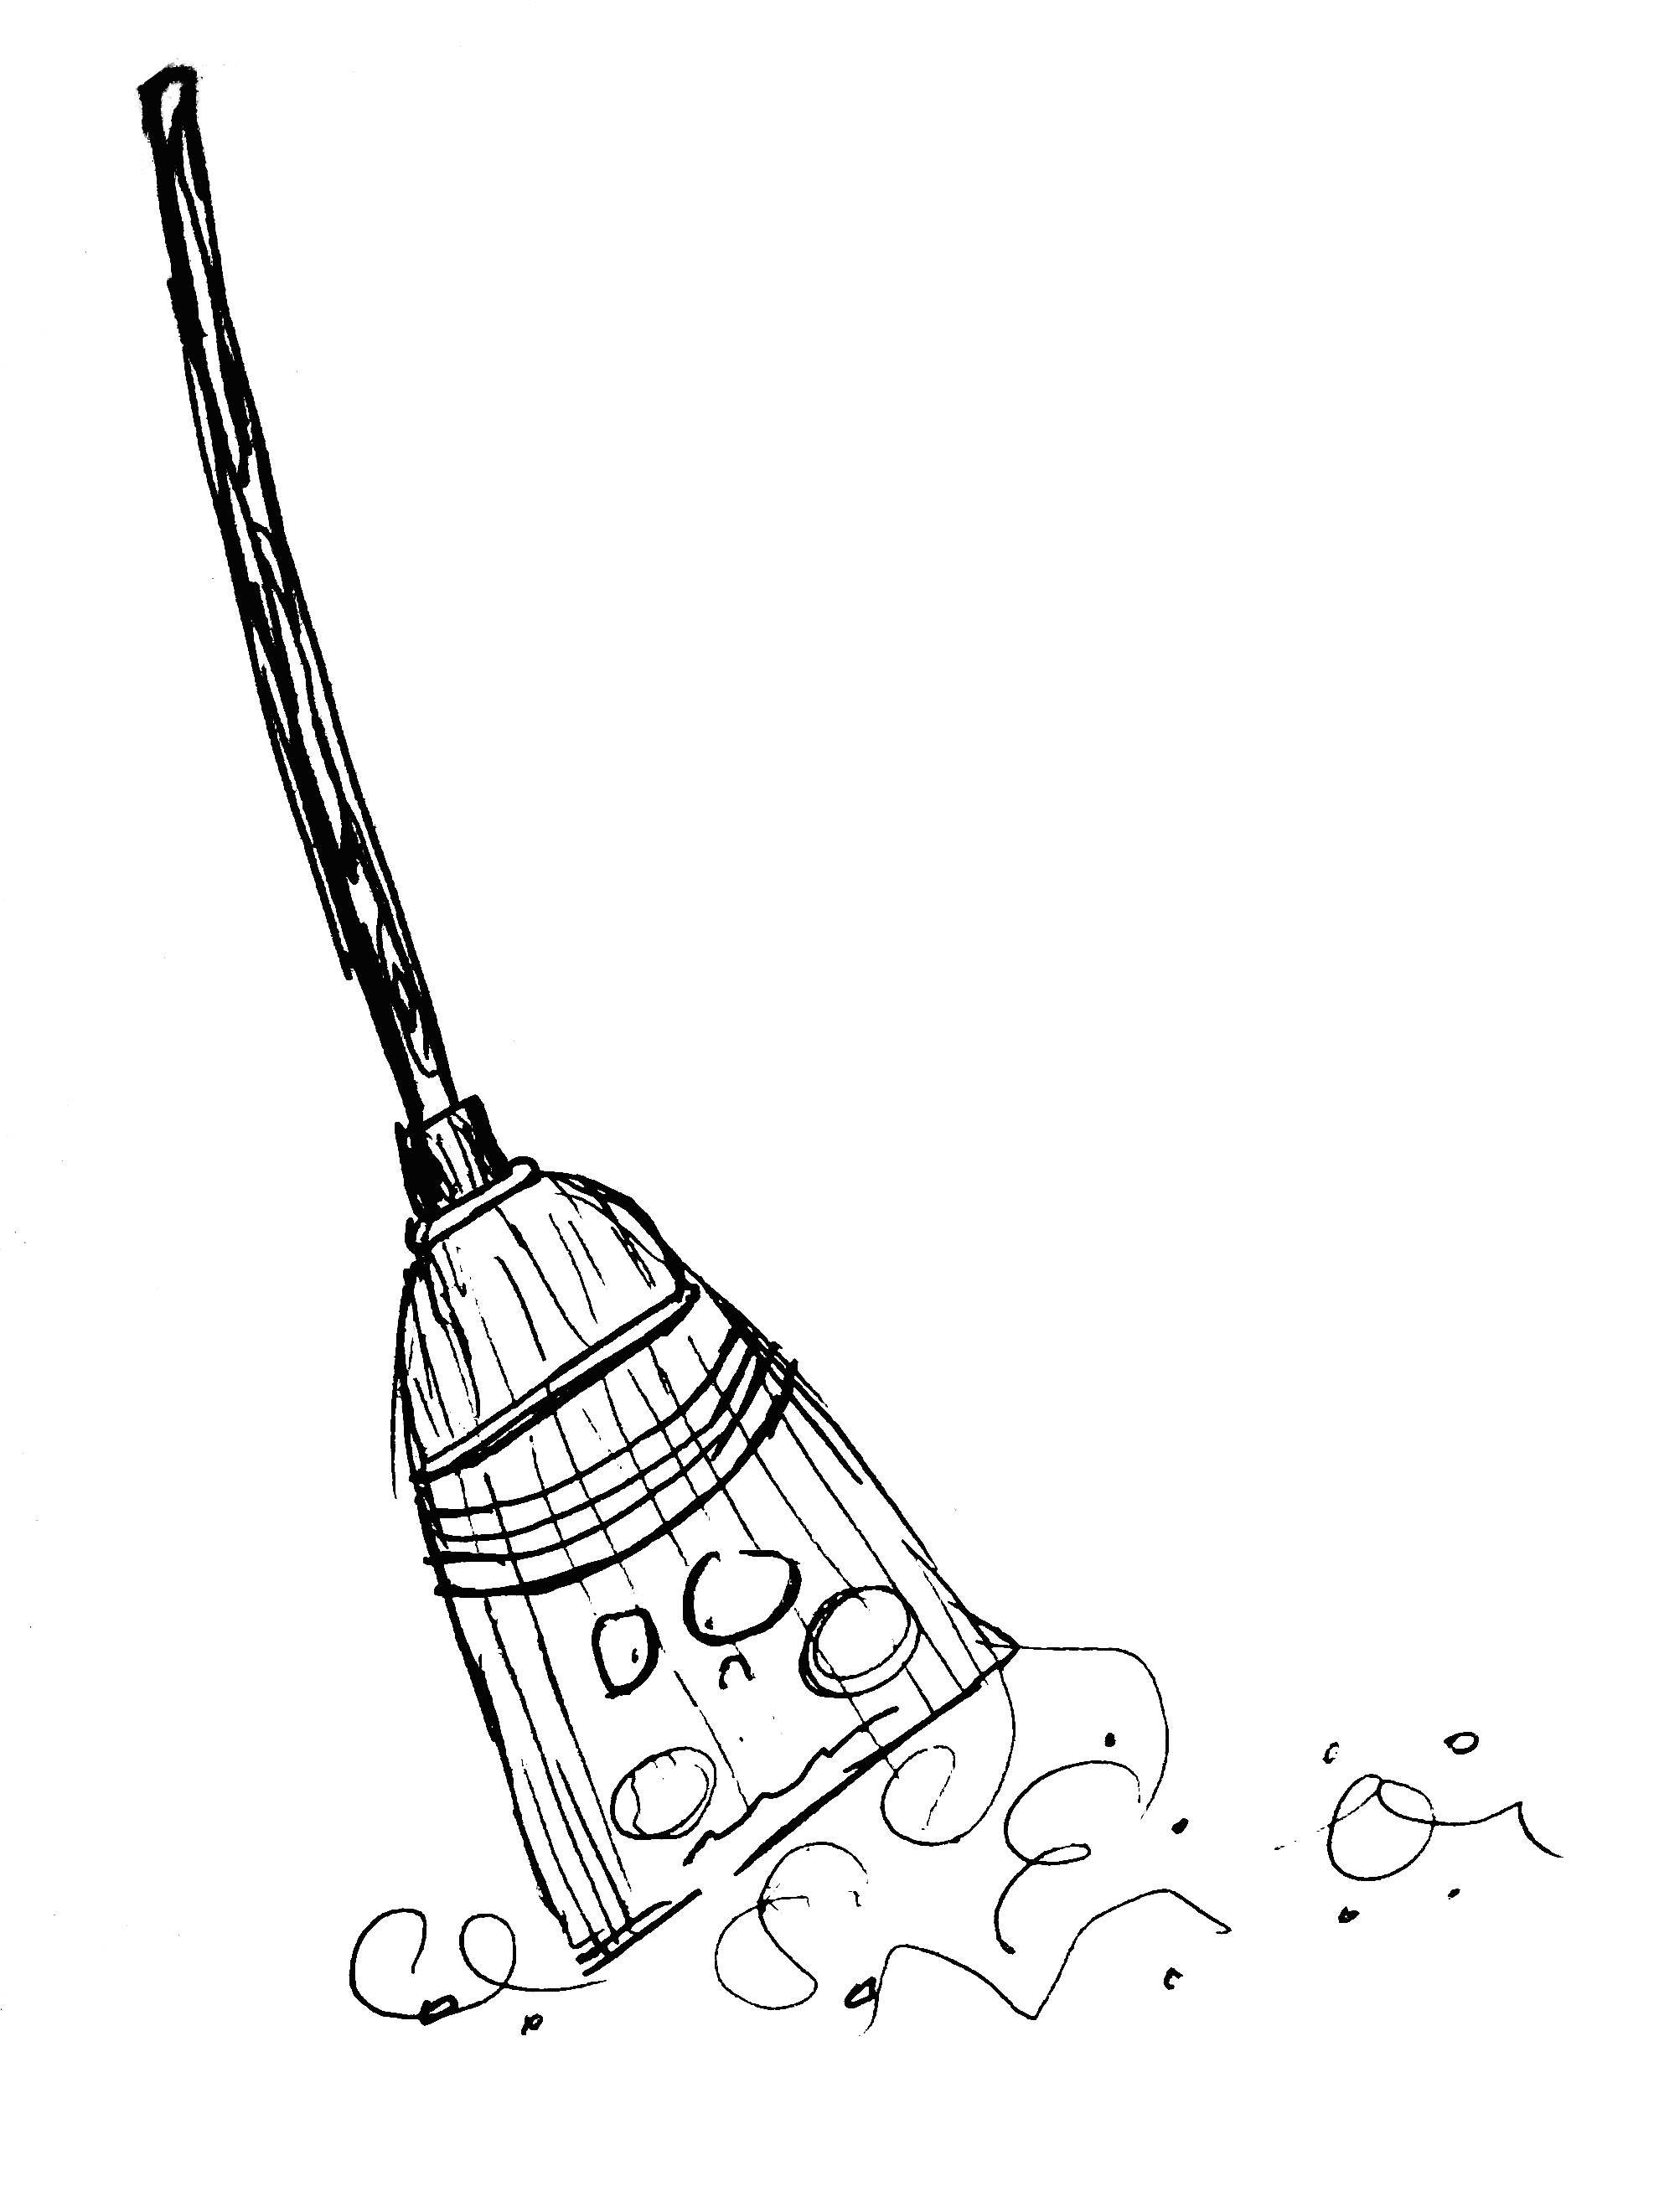 Broom coloring pages to download